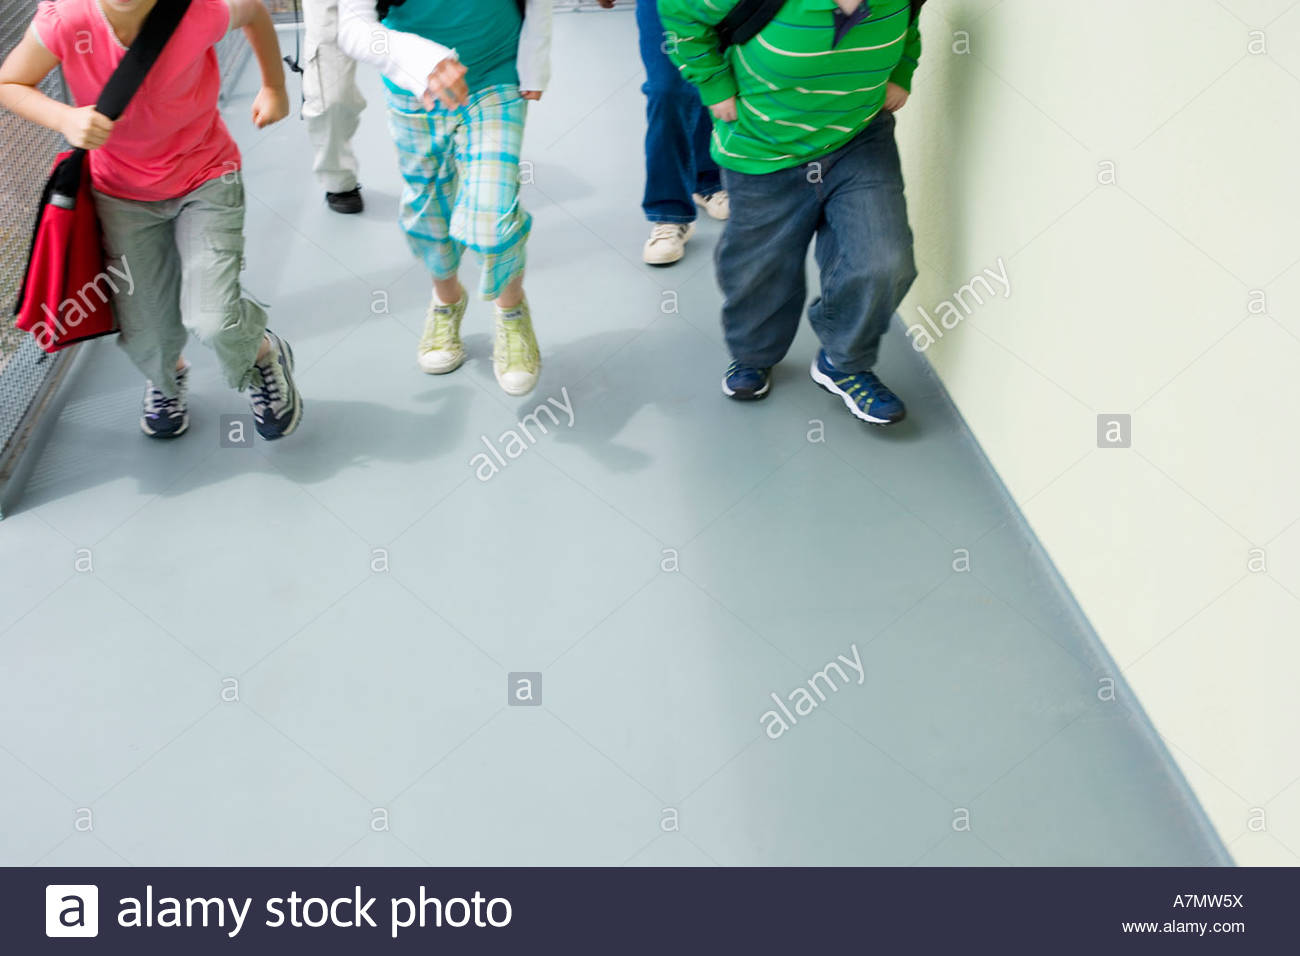 Children 10 12 running in school corridor front view low section - Stock Image